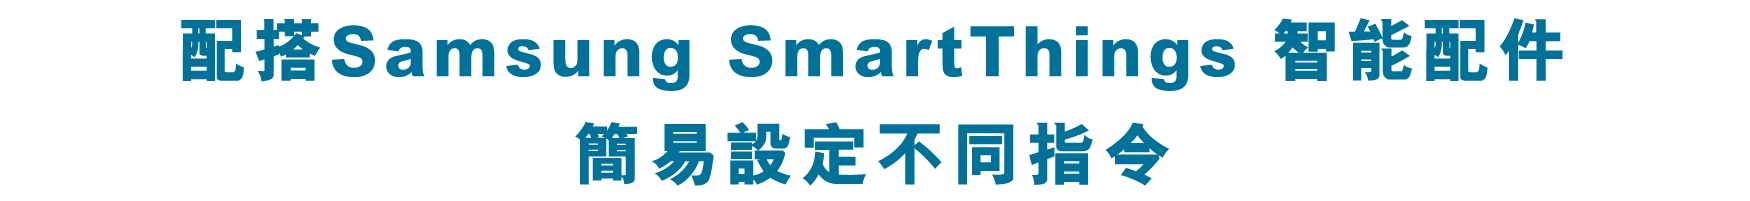 配搭Samsung SmartThings 智能配件 簡易設定不同指令